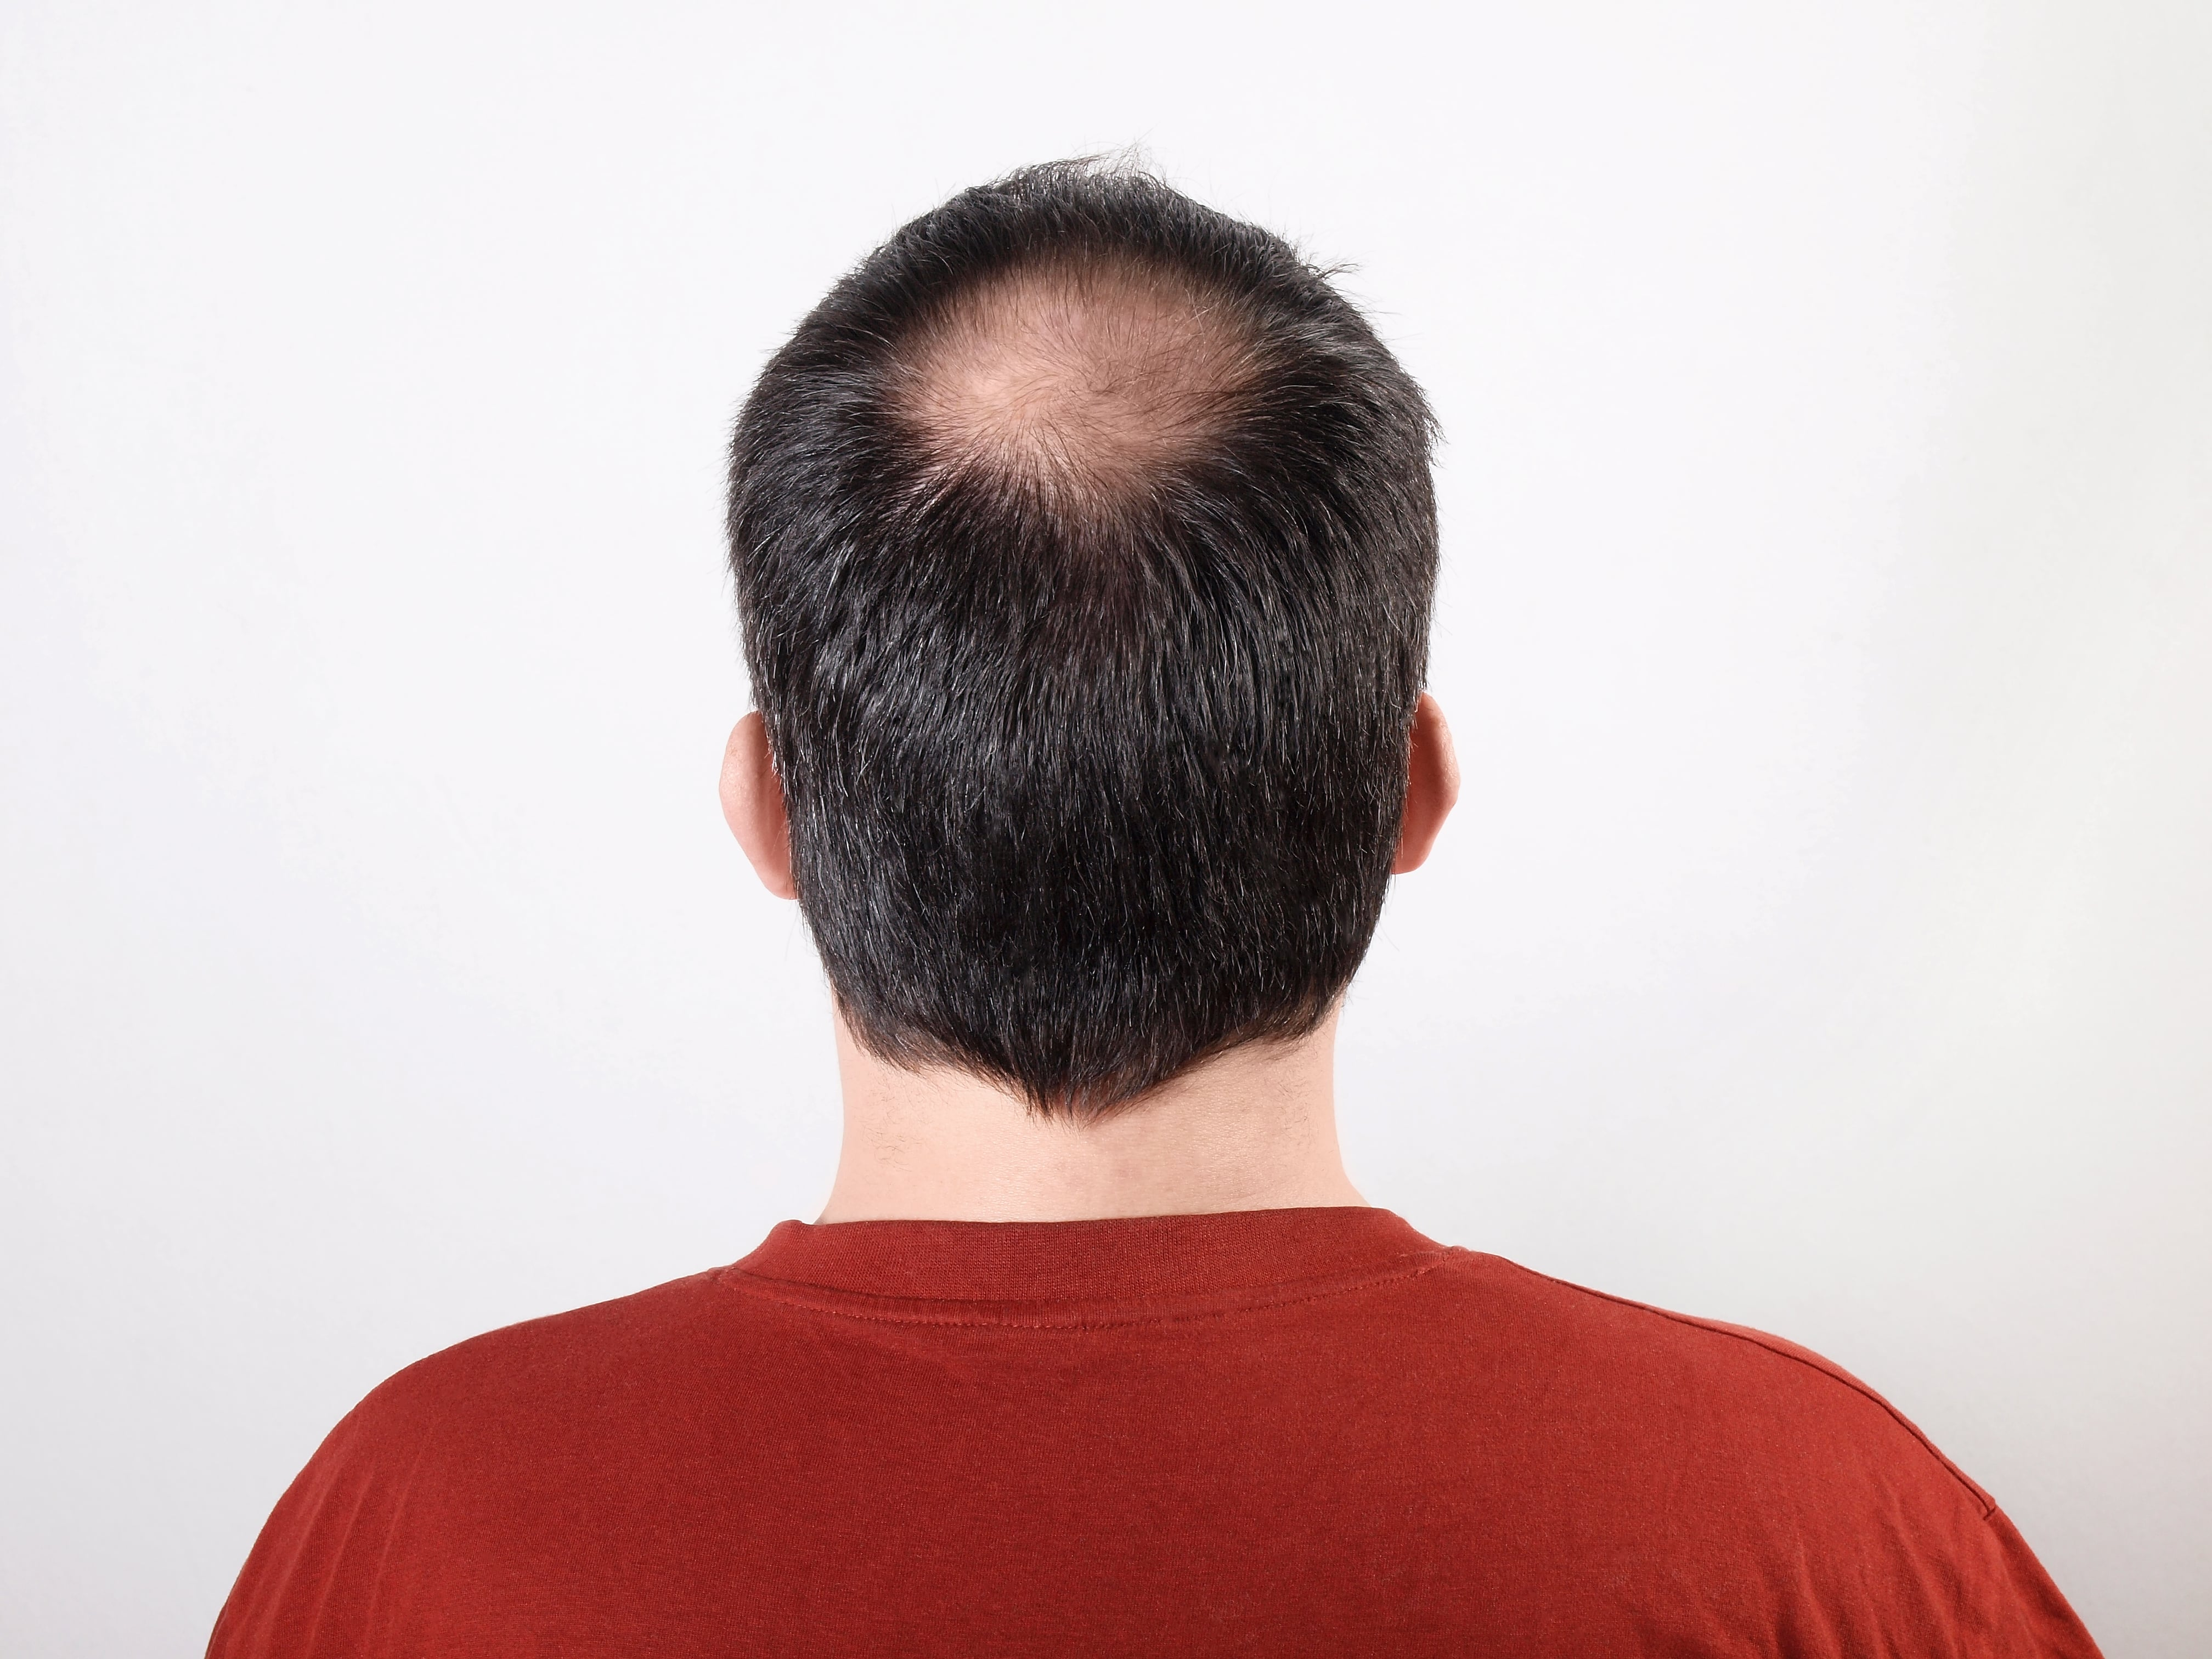 Everything You Need to Know about Hair Transplantation